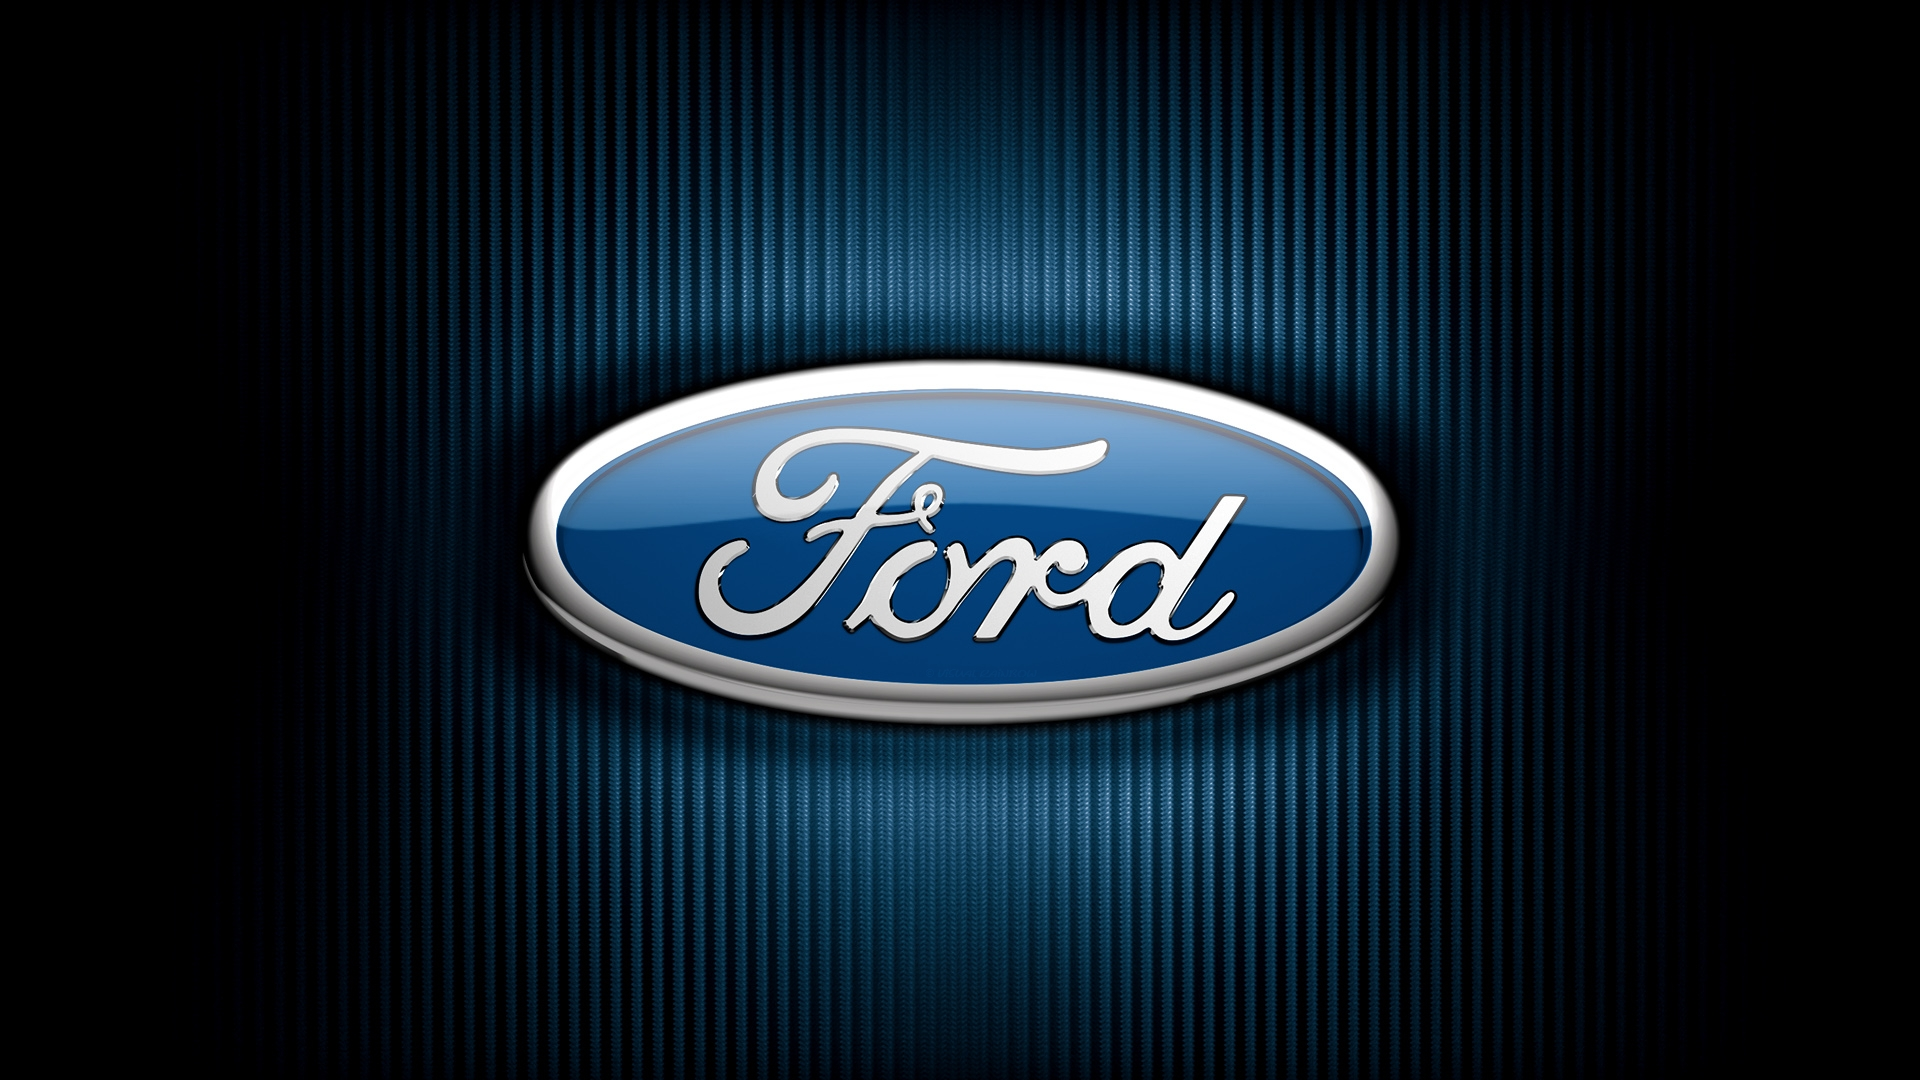 Ford Car Logo Wallpaper